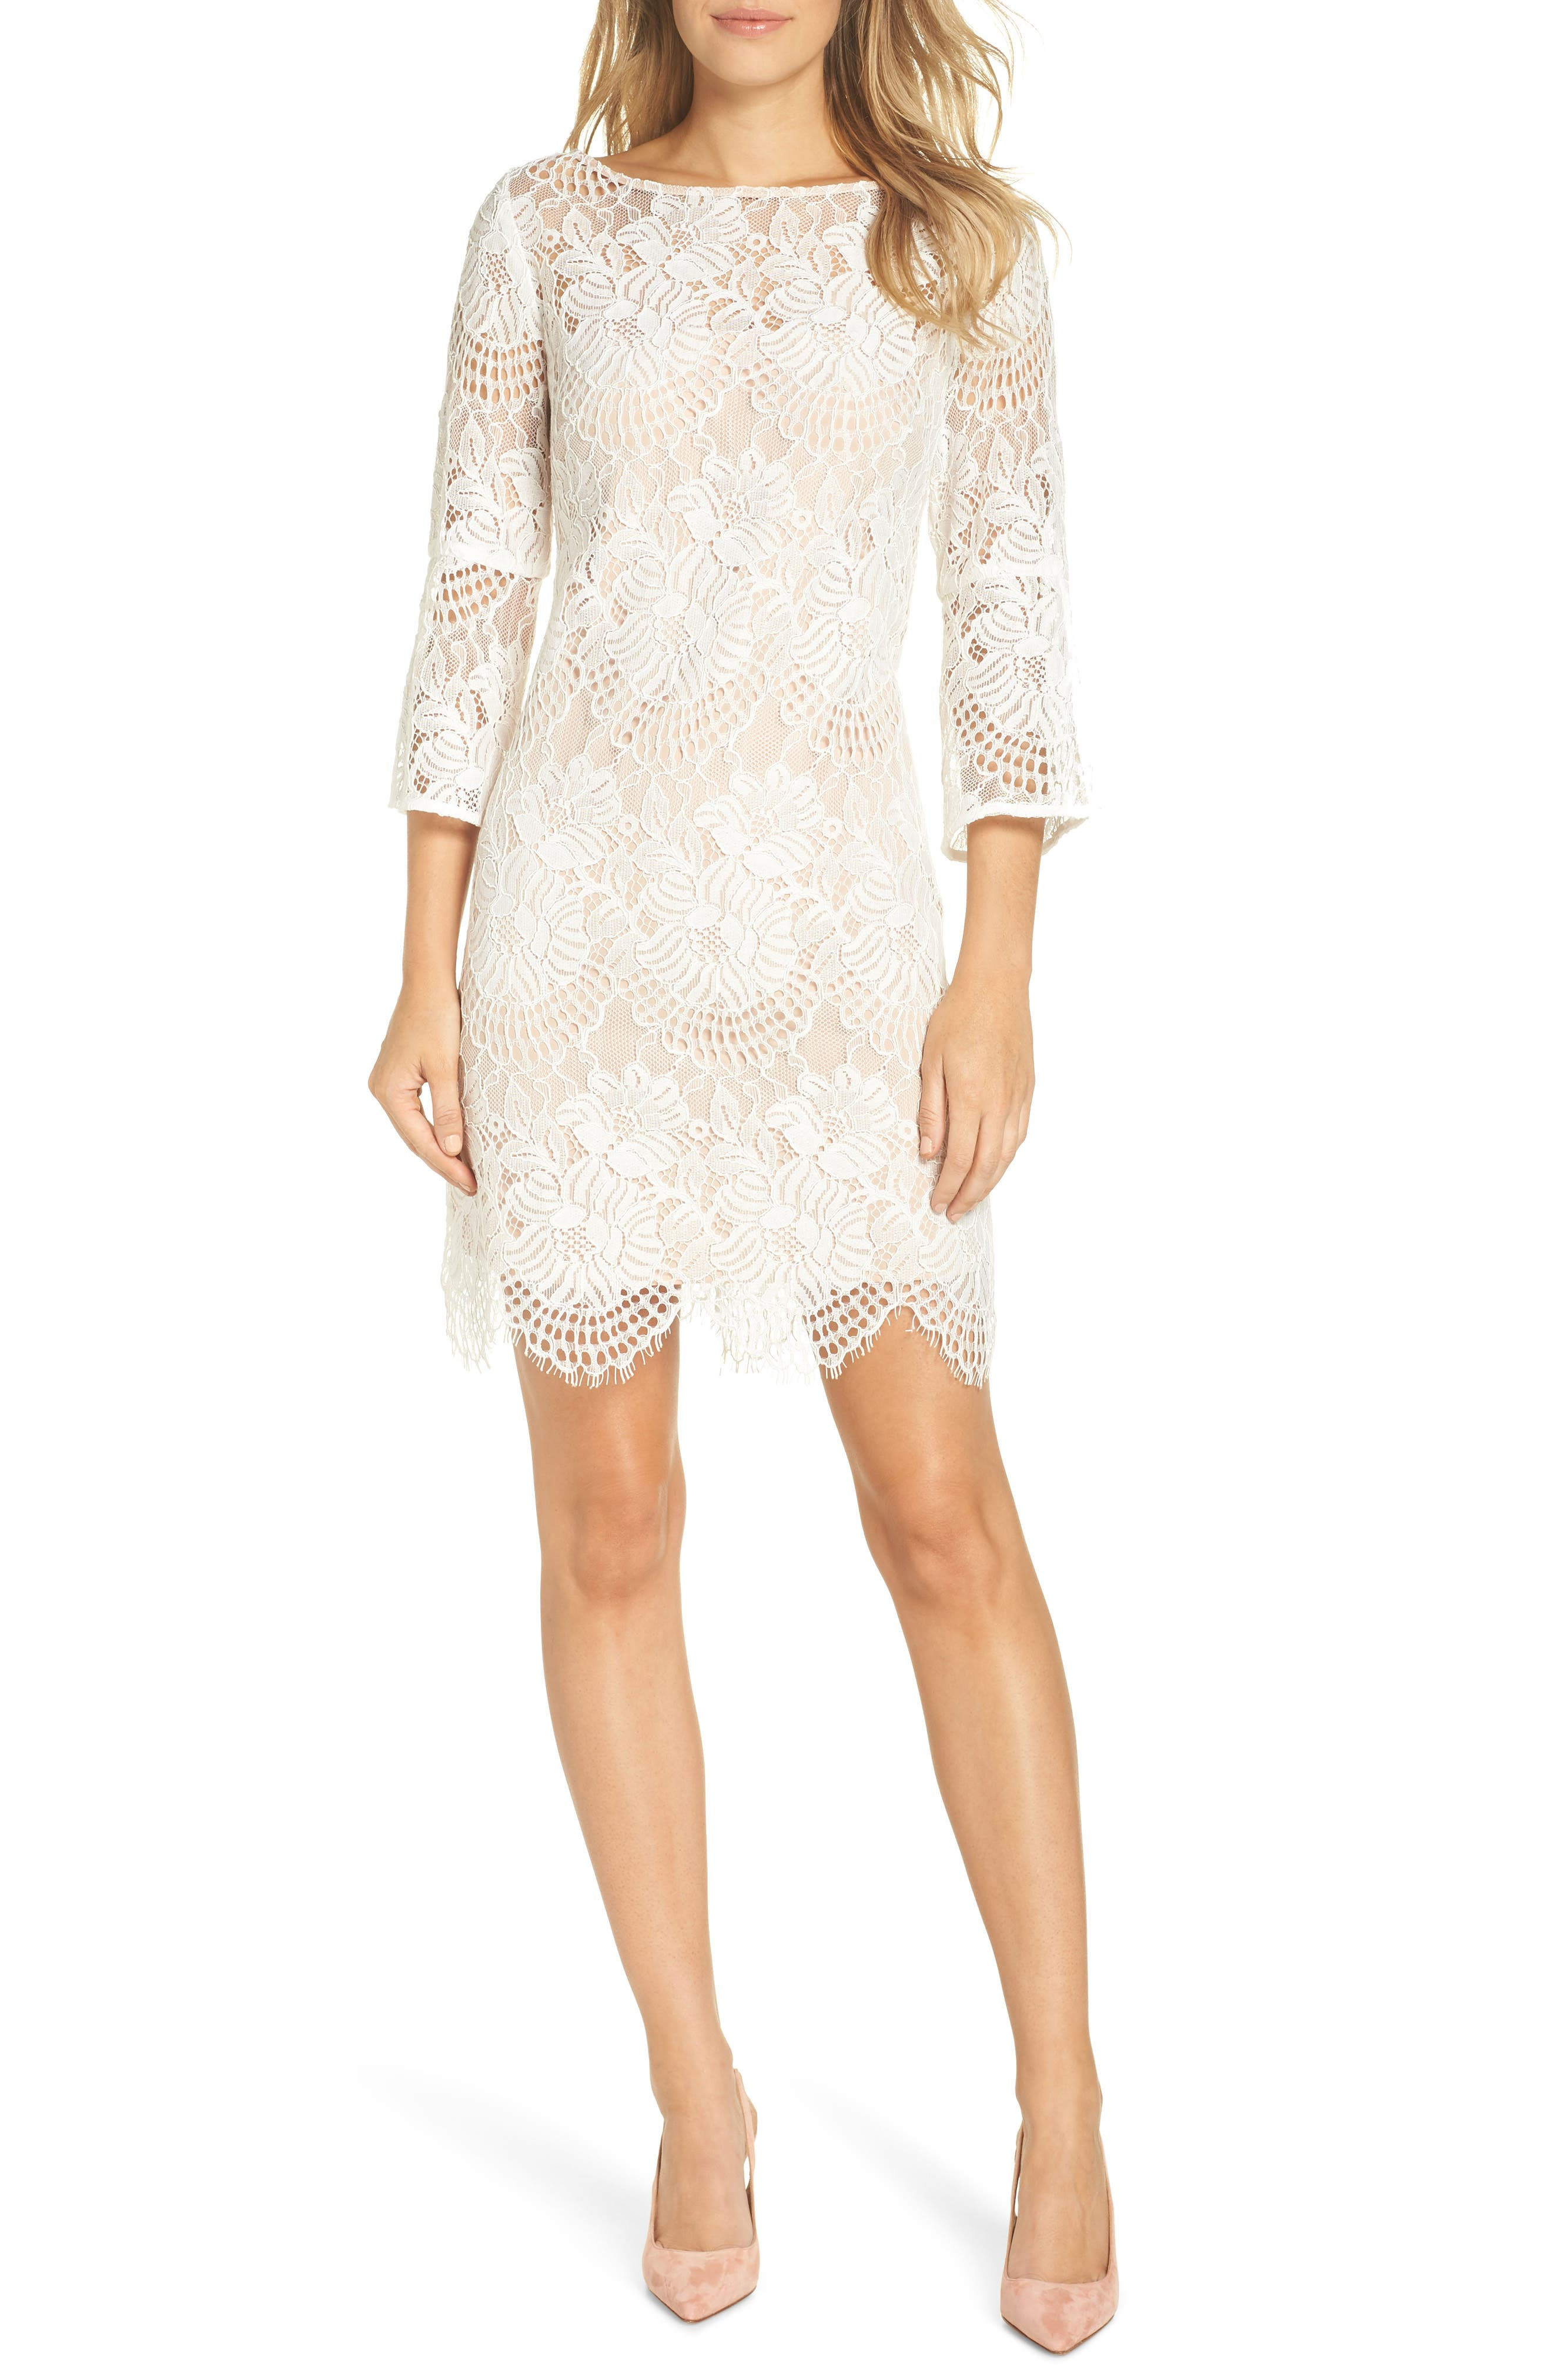 VINCE CAMUTO Lace Shift Dress, Main, color, IVORY